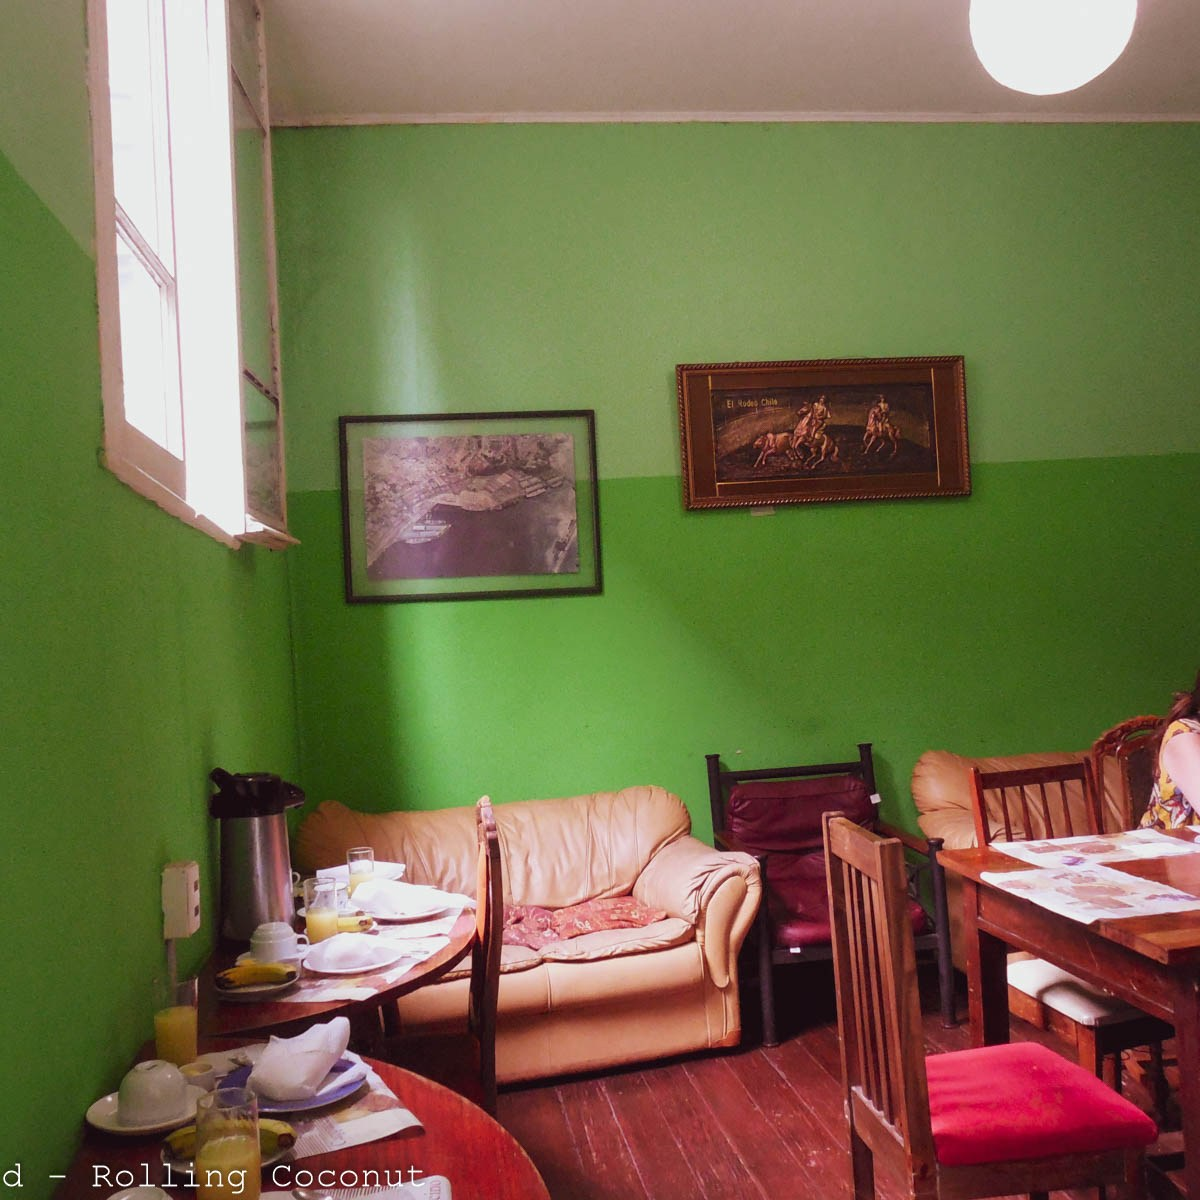 Hostal Chaptex Dining Valparaiso Chile Photo Rolling Coconut Ooaworld